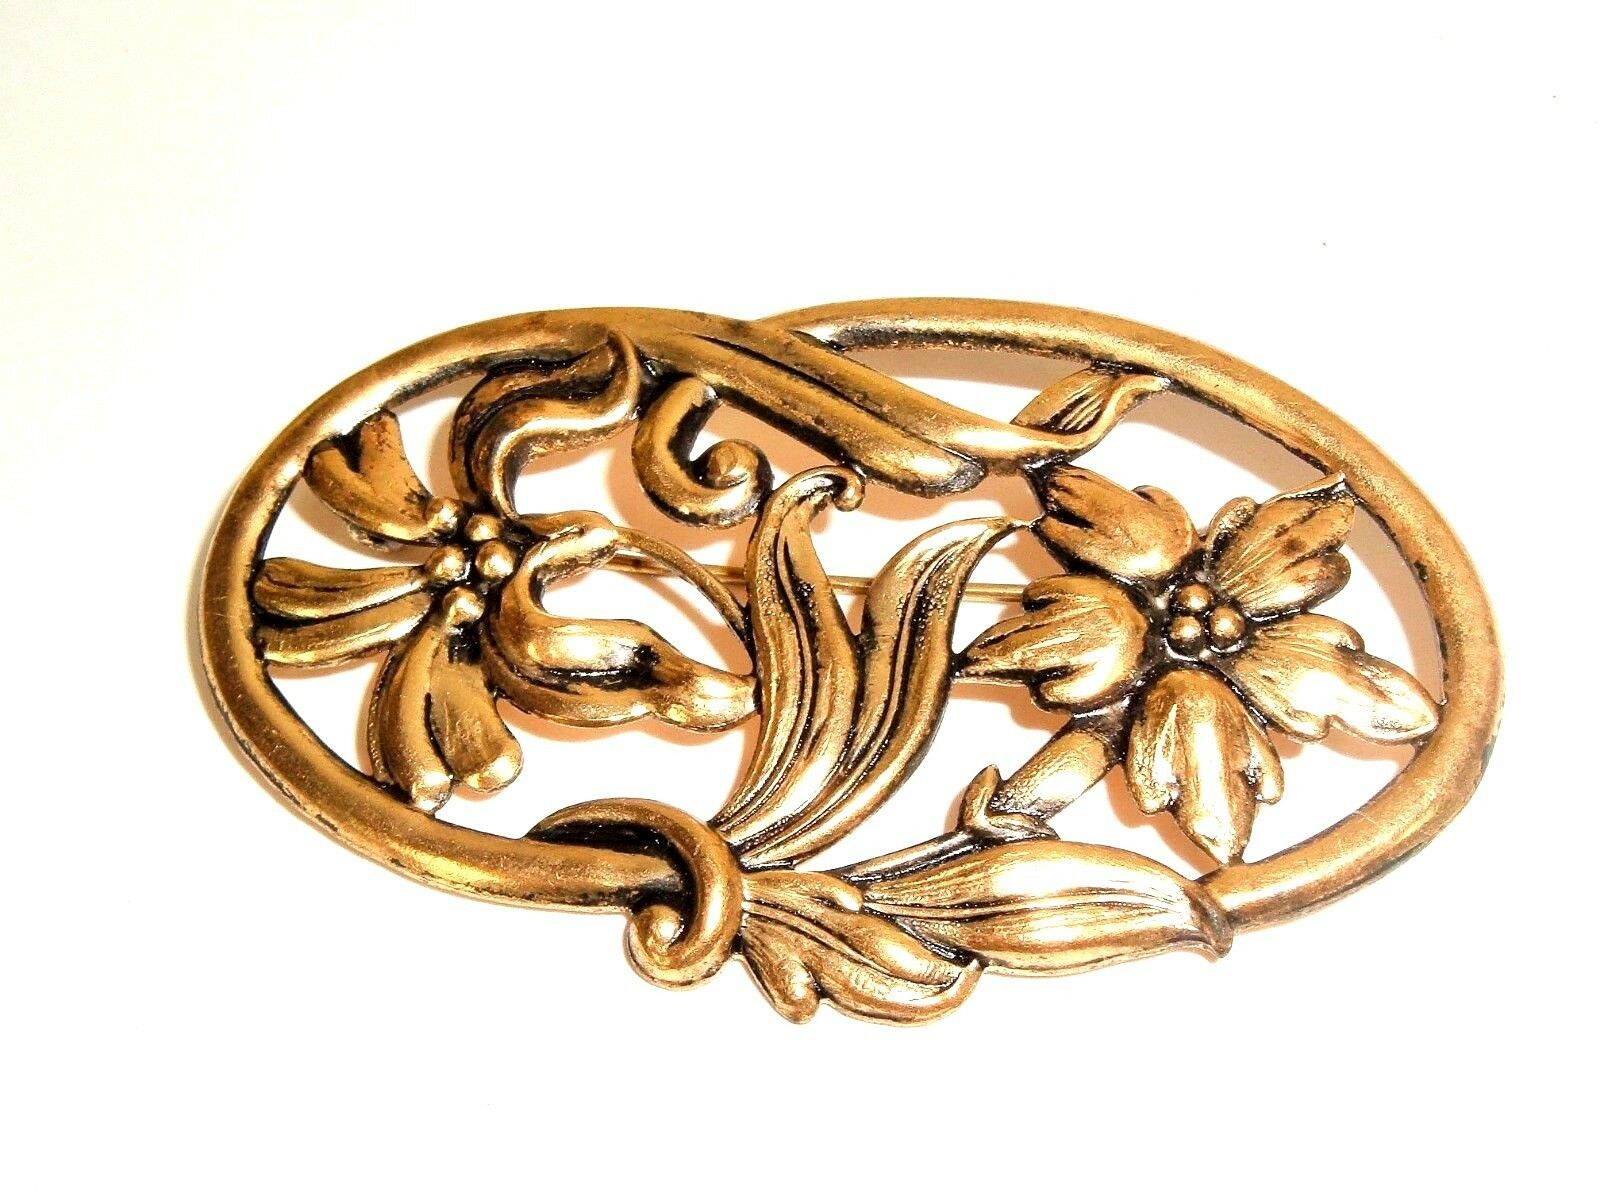 Primary image for Vintage Victorian Edwardian Gold Tone Repousse Floral Design Brooch